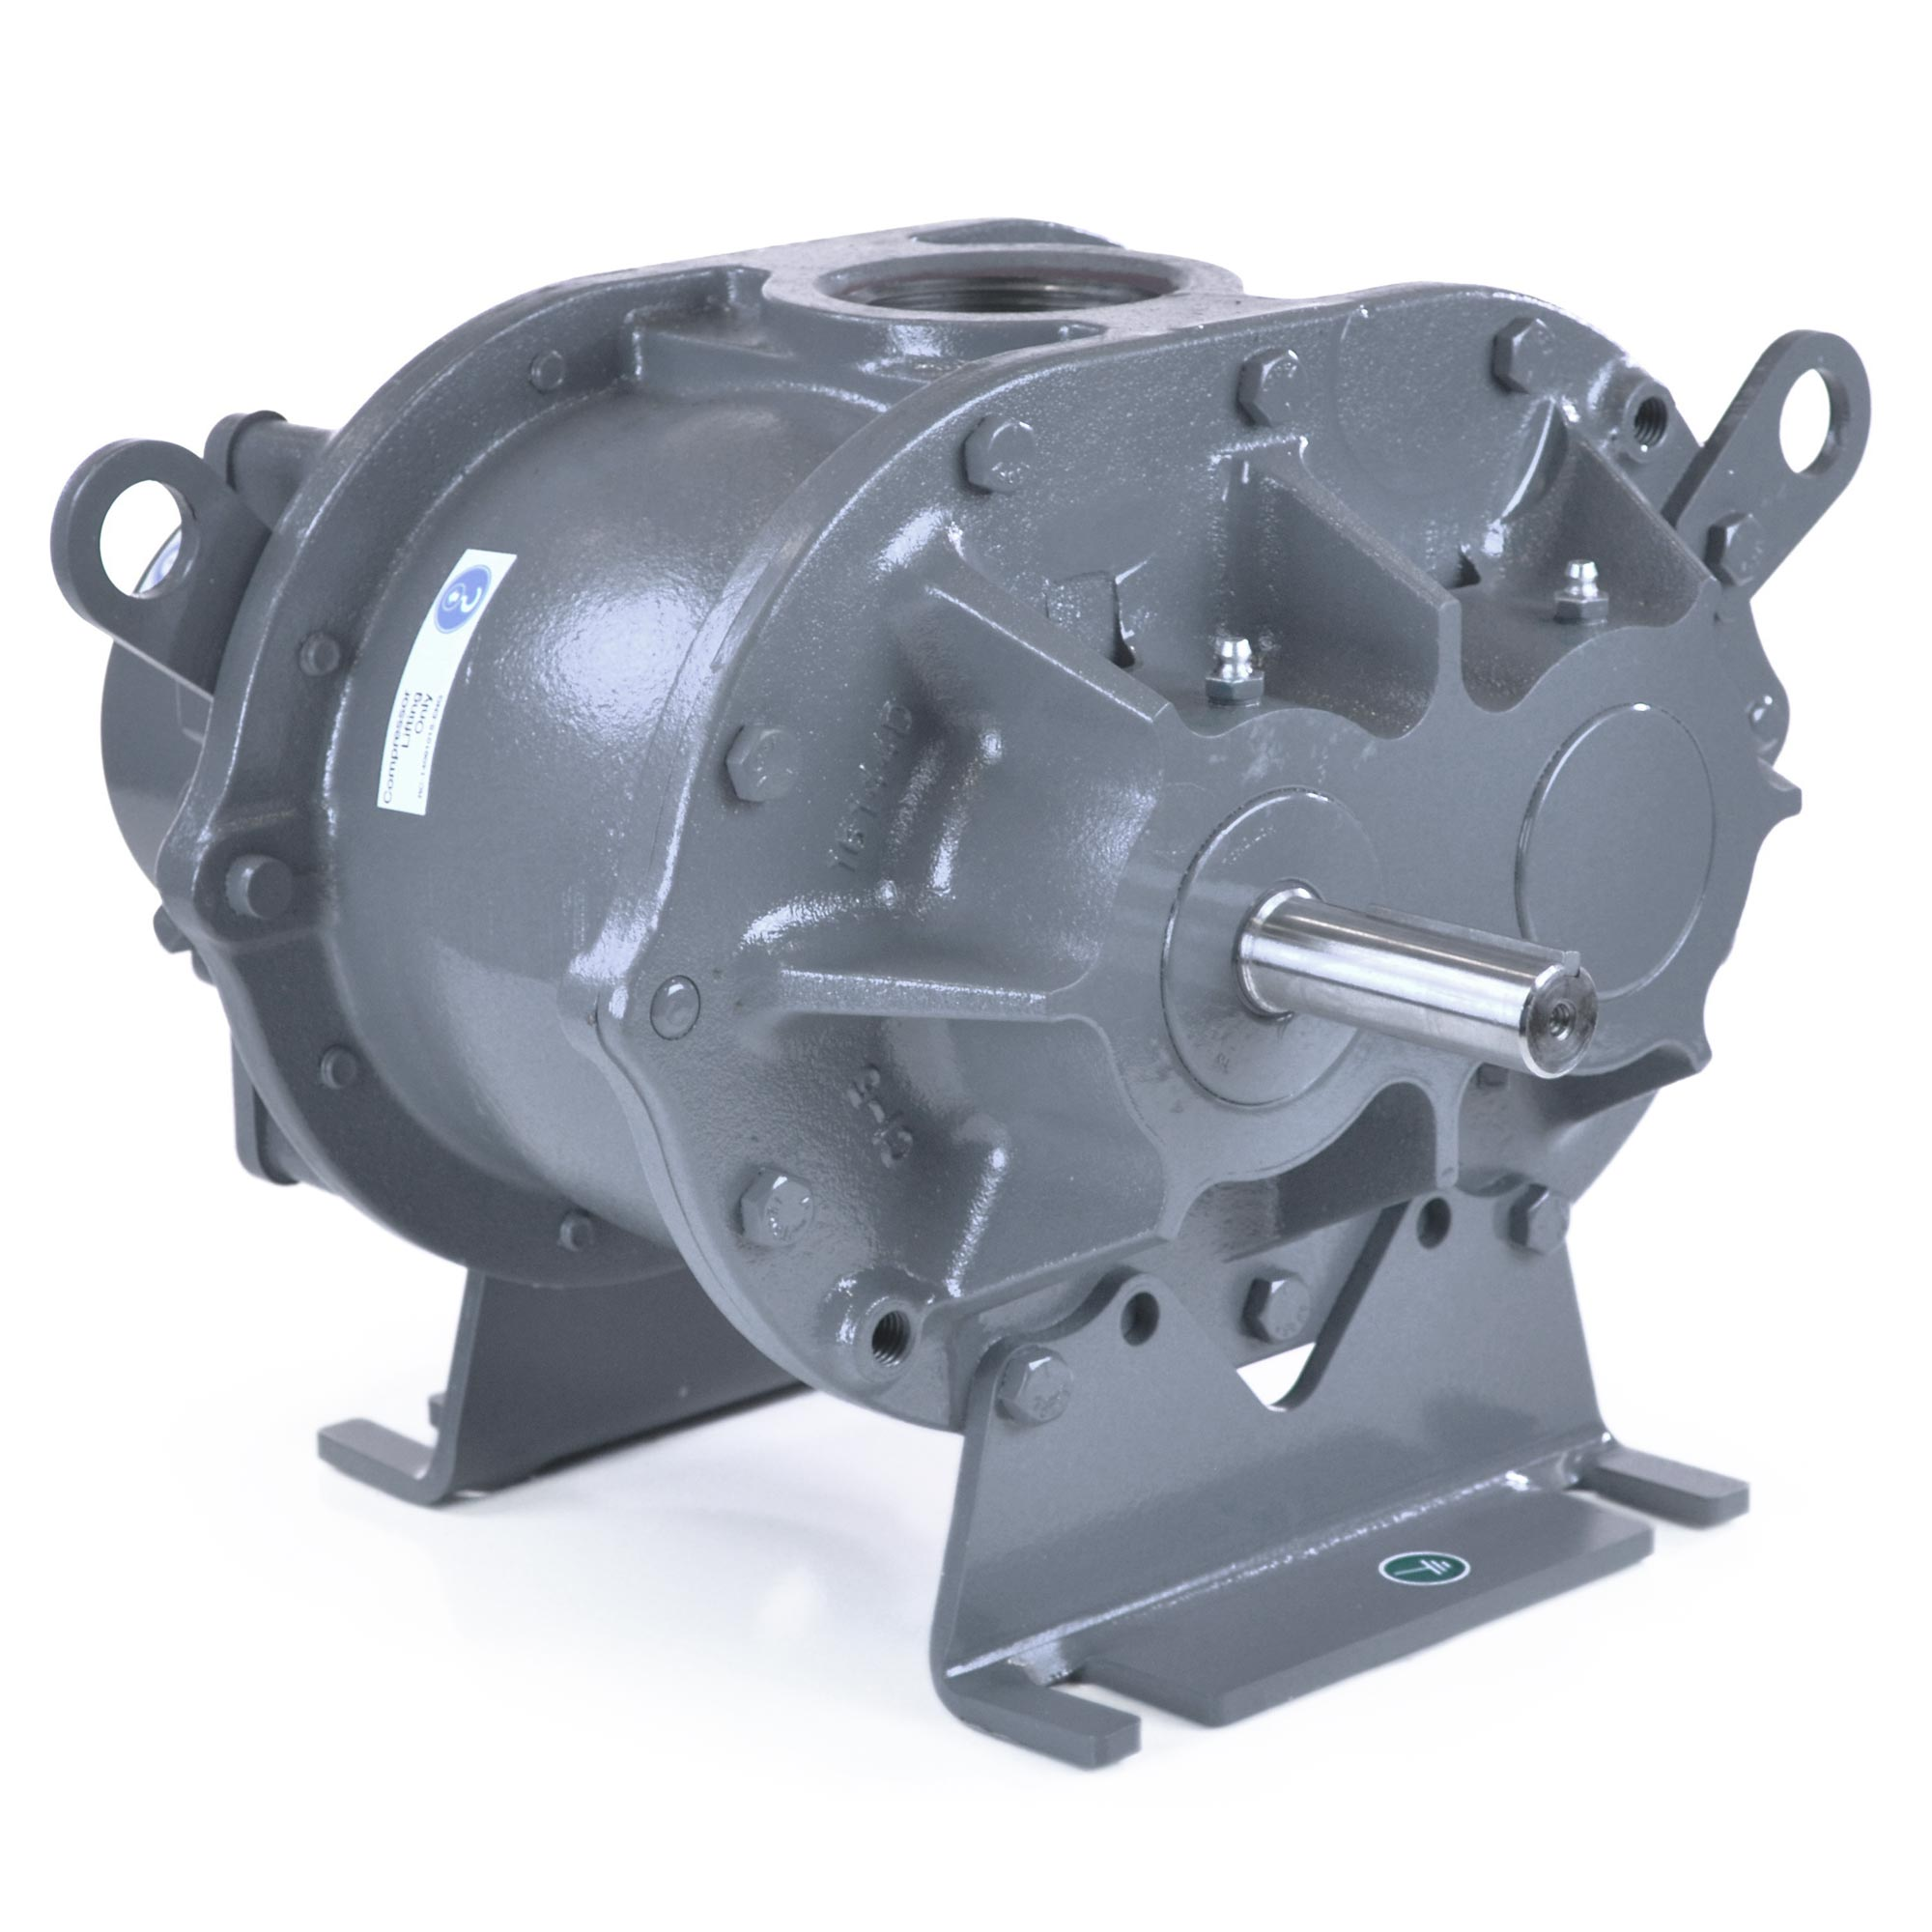 Roots Supercharger Kits: Roots 45 URAI Blower